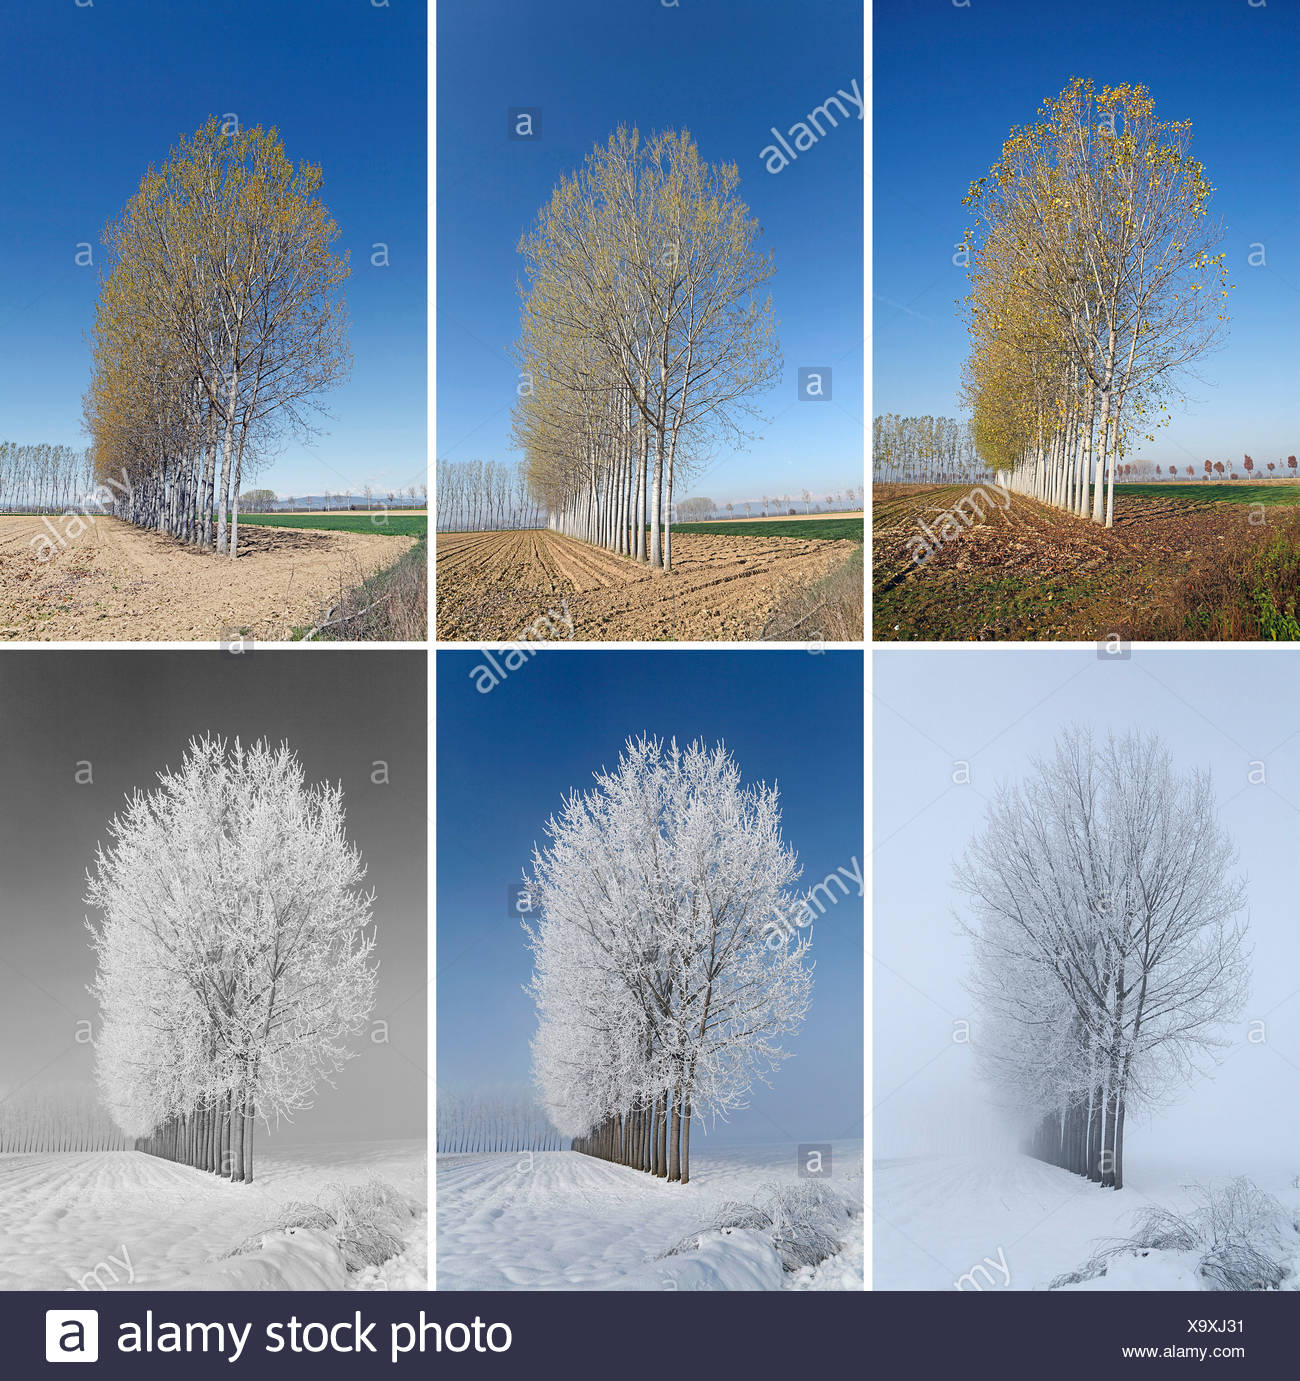 Italy Torino POIRINO picture series seasons trees pictures 6 spring summer autumn winter - Stock Image